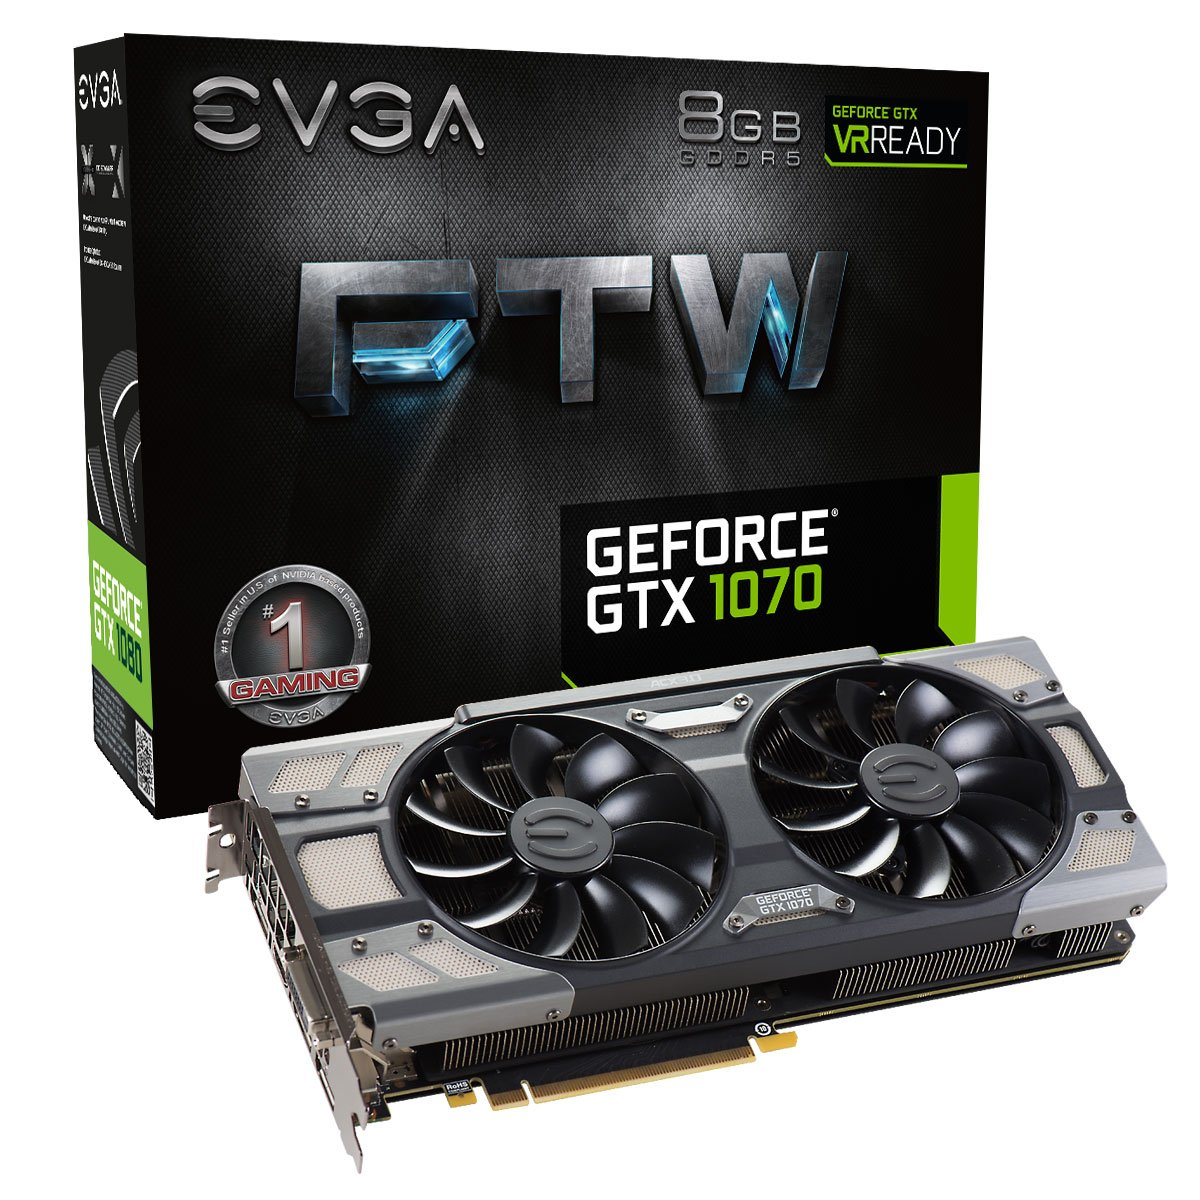 EVGA GeForce GTX 1070 FTW GAMING ACX 3.0, 8GB GDDR5, RGB LED, 10CM FAN, 10 Power Phases, Double BIOS, DX12 OSD Support (PXOC) Graphics Card 08G-P4-6276-KR by EVGA (Image #1)